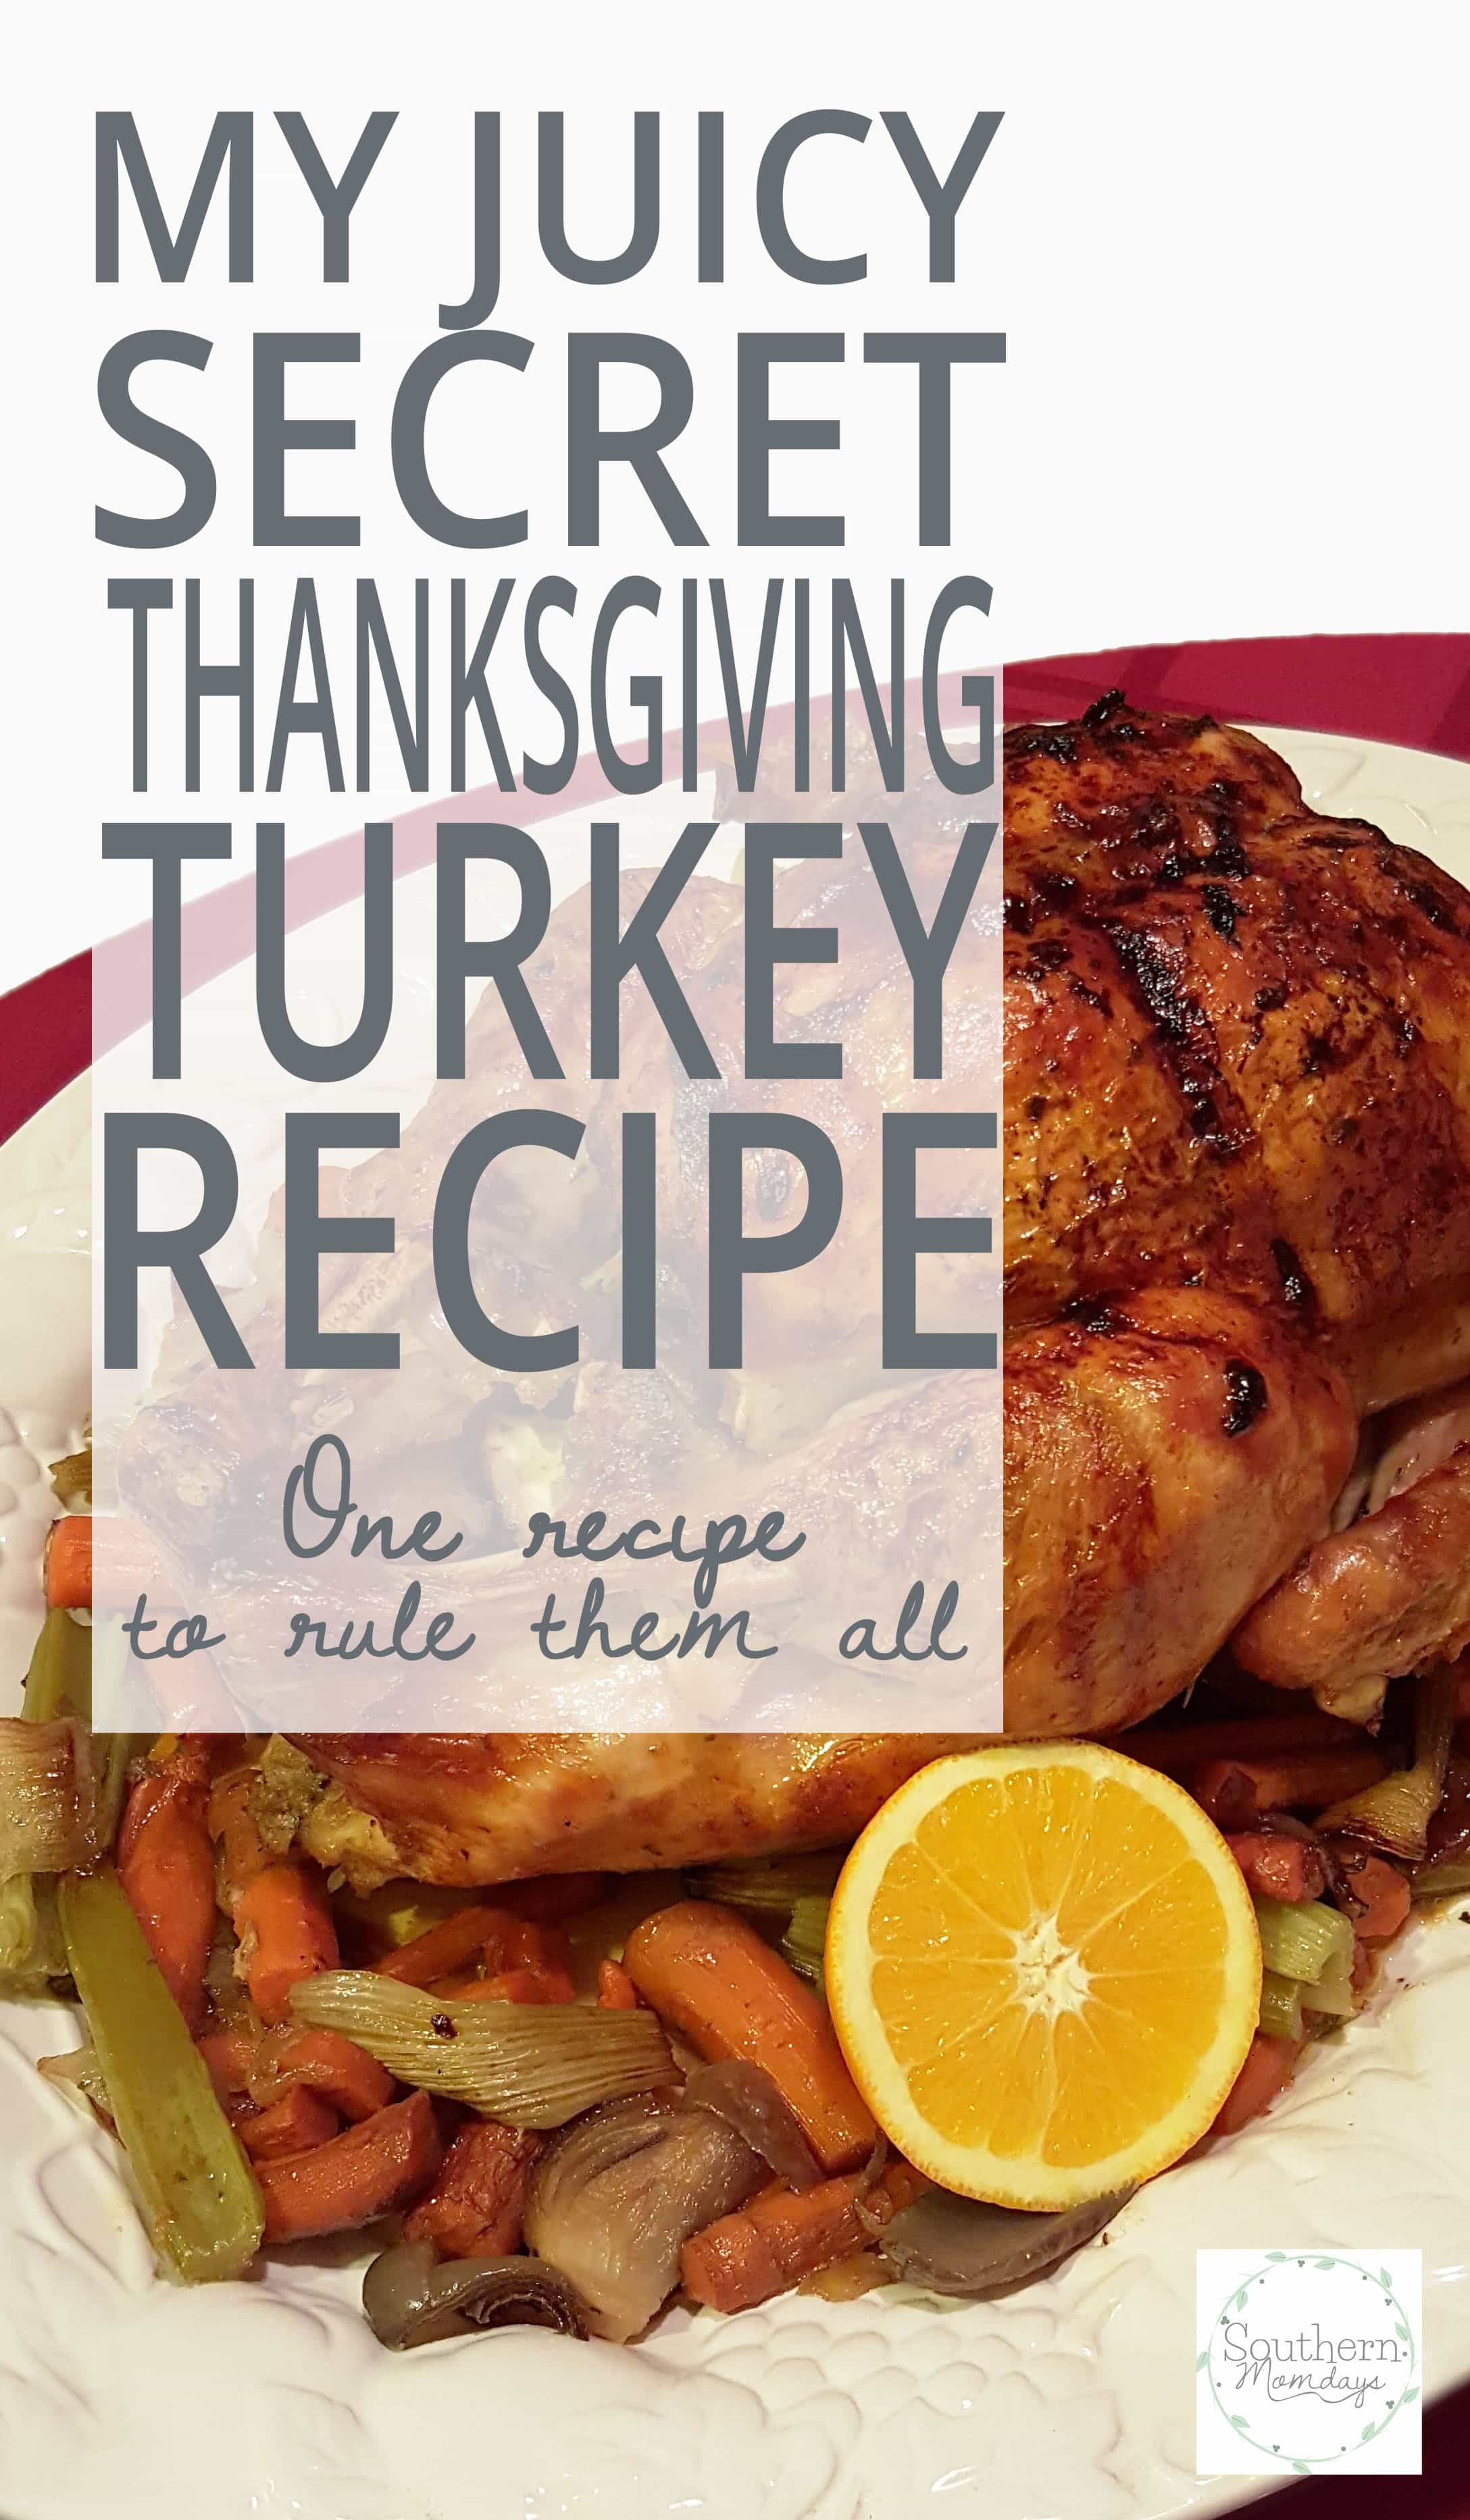 Juicy Thanksgiving Turkey Recipe  My Juicy Secret Thanksgiving Turkey Recipe Southern Momdays